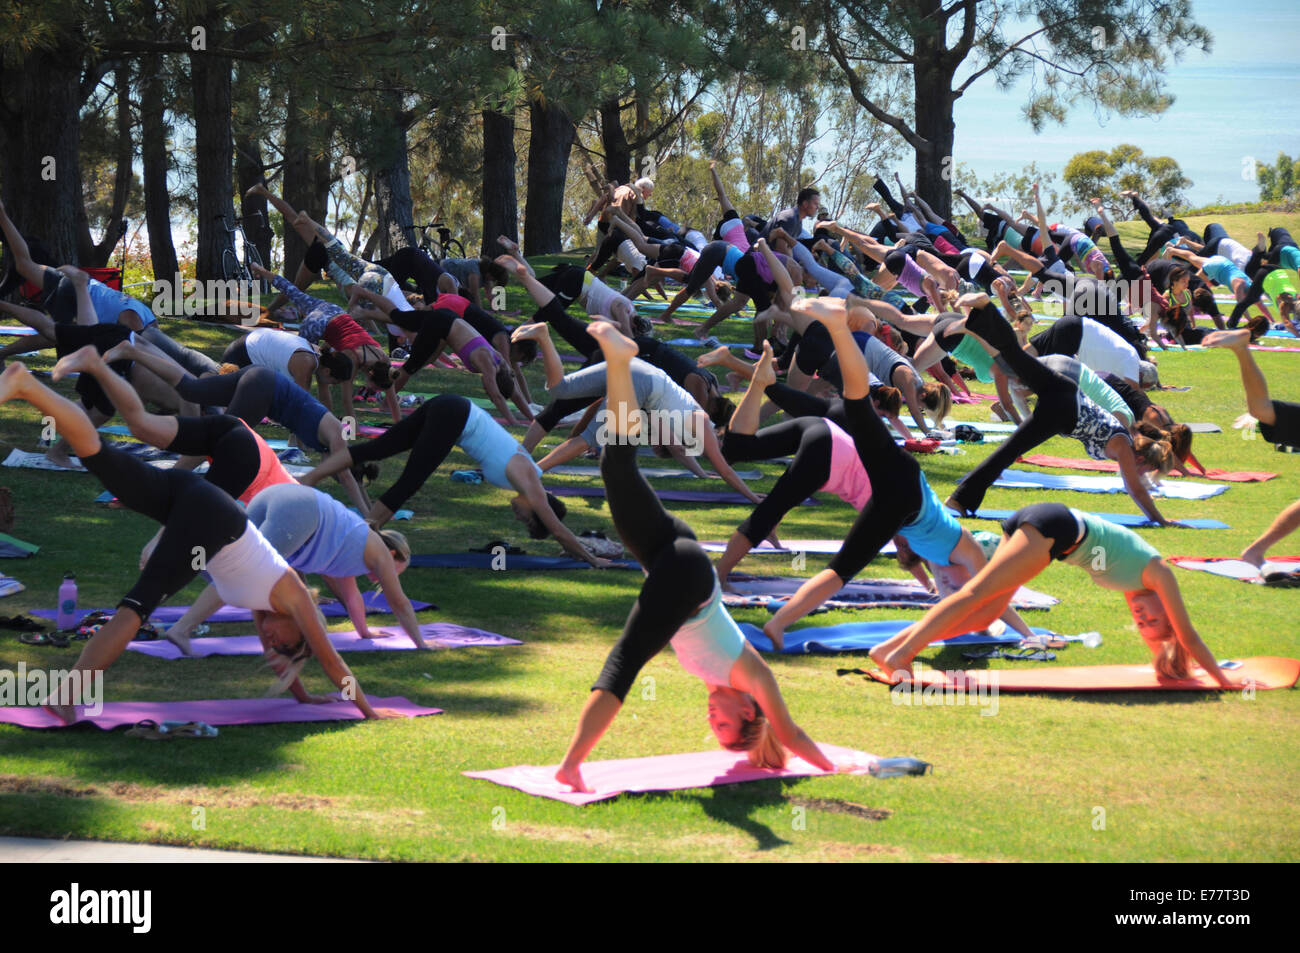 Daily Free Outdoor Exercise And Yoga Classes At Lantern Bay Park In Dana Point California